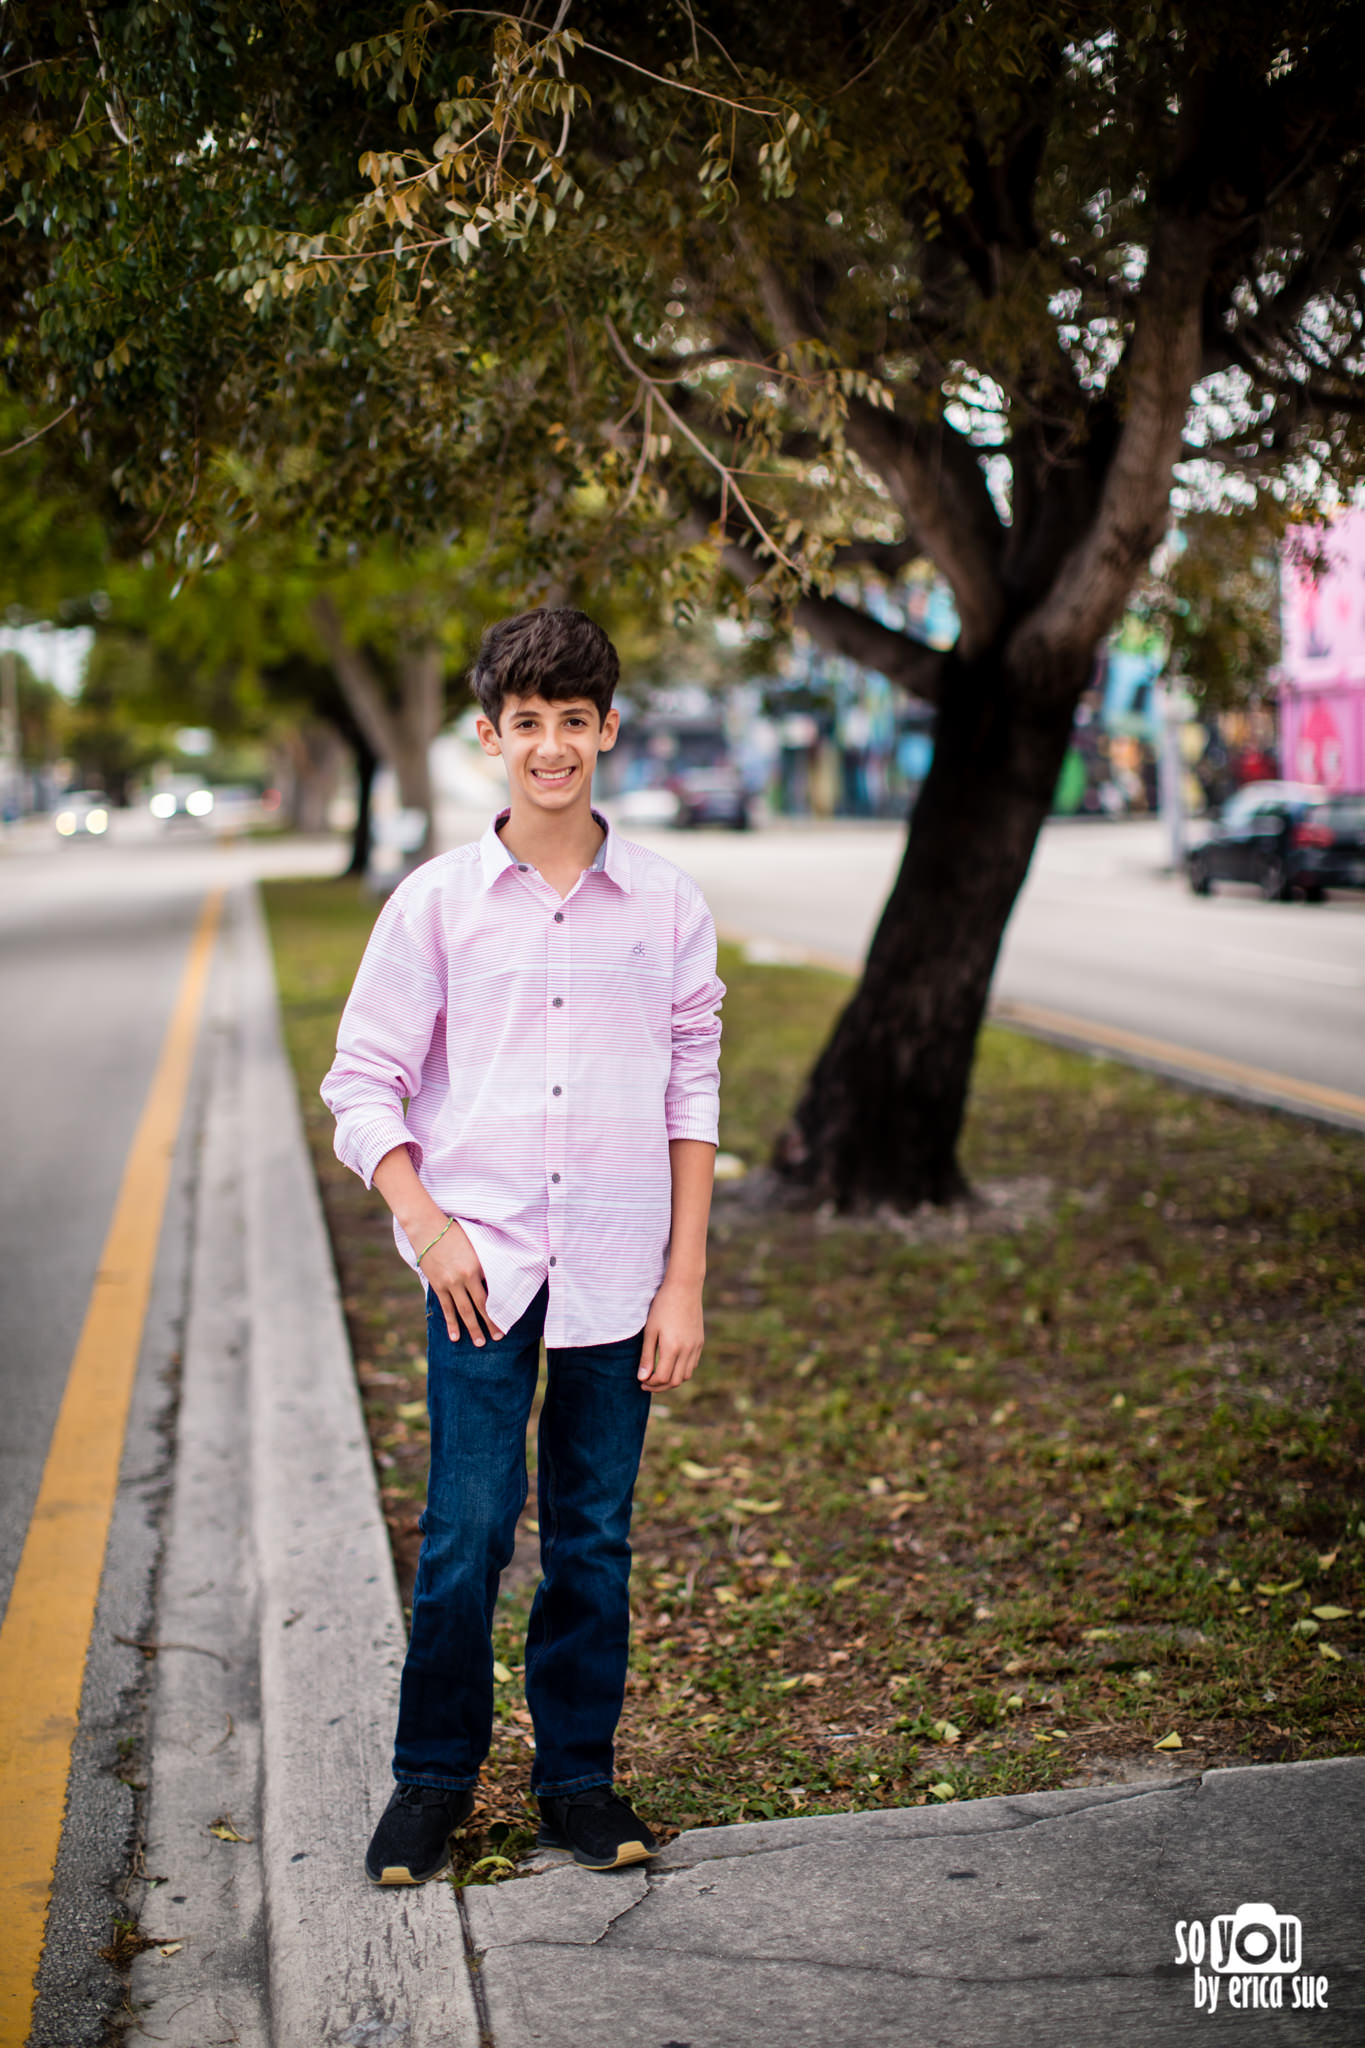 so-you-by-erica-sue-wynwood-miami-photographer-mitzvah-pre-shoot-9744.jpg